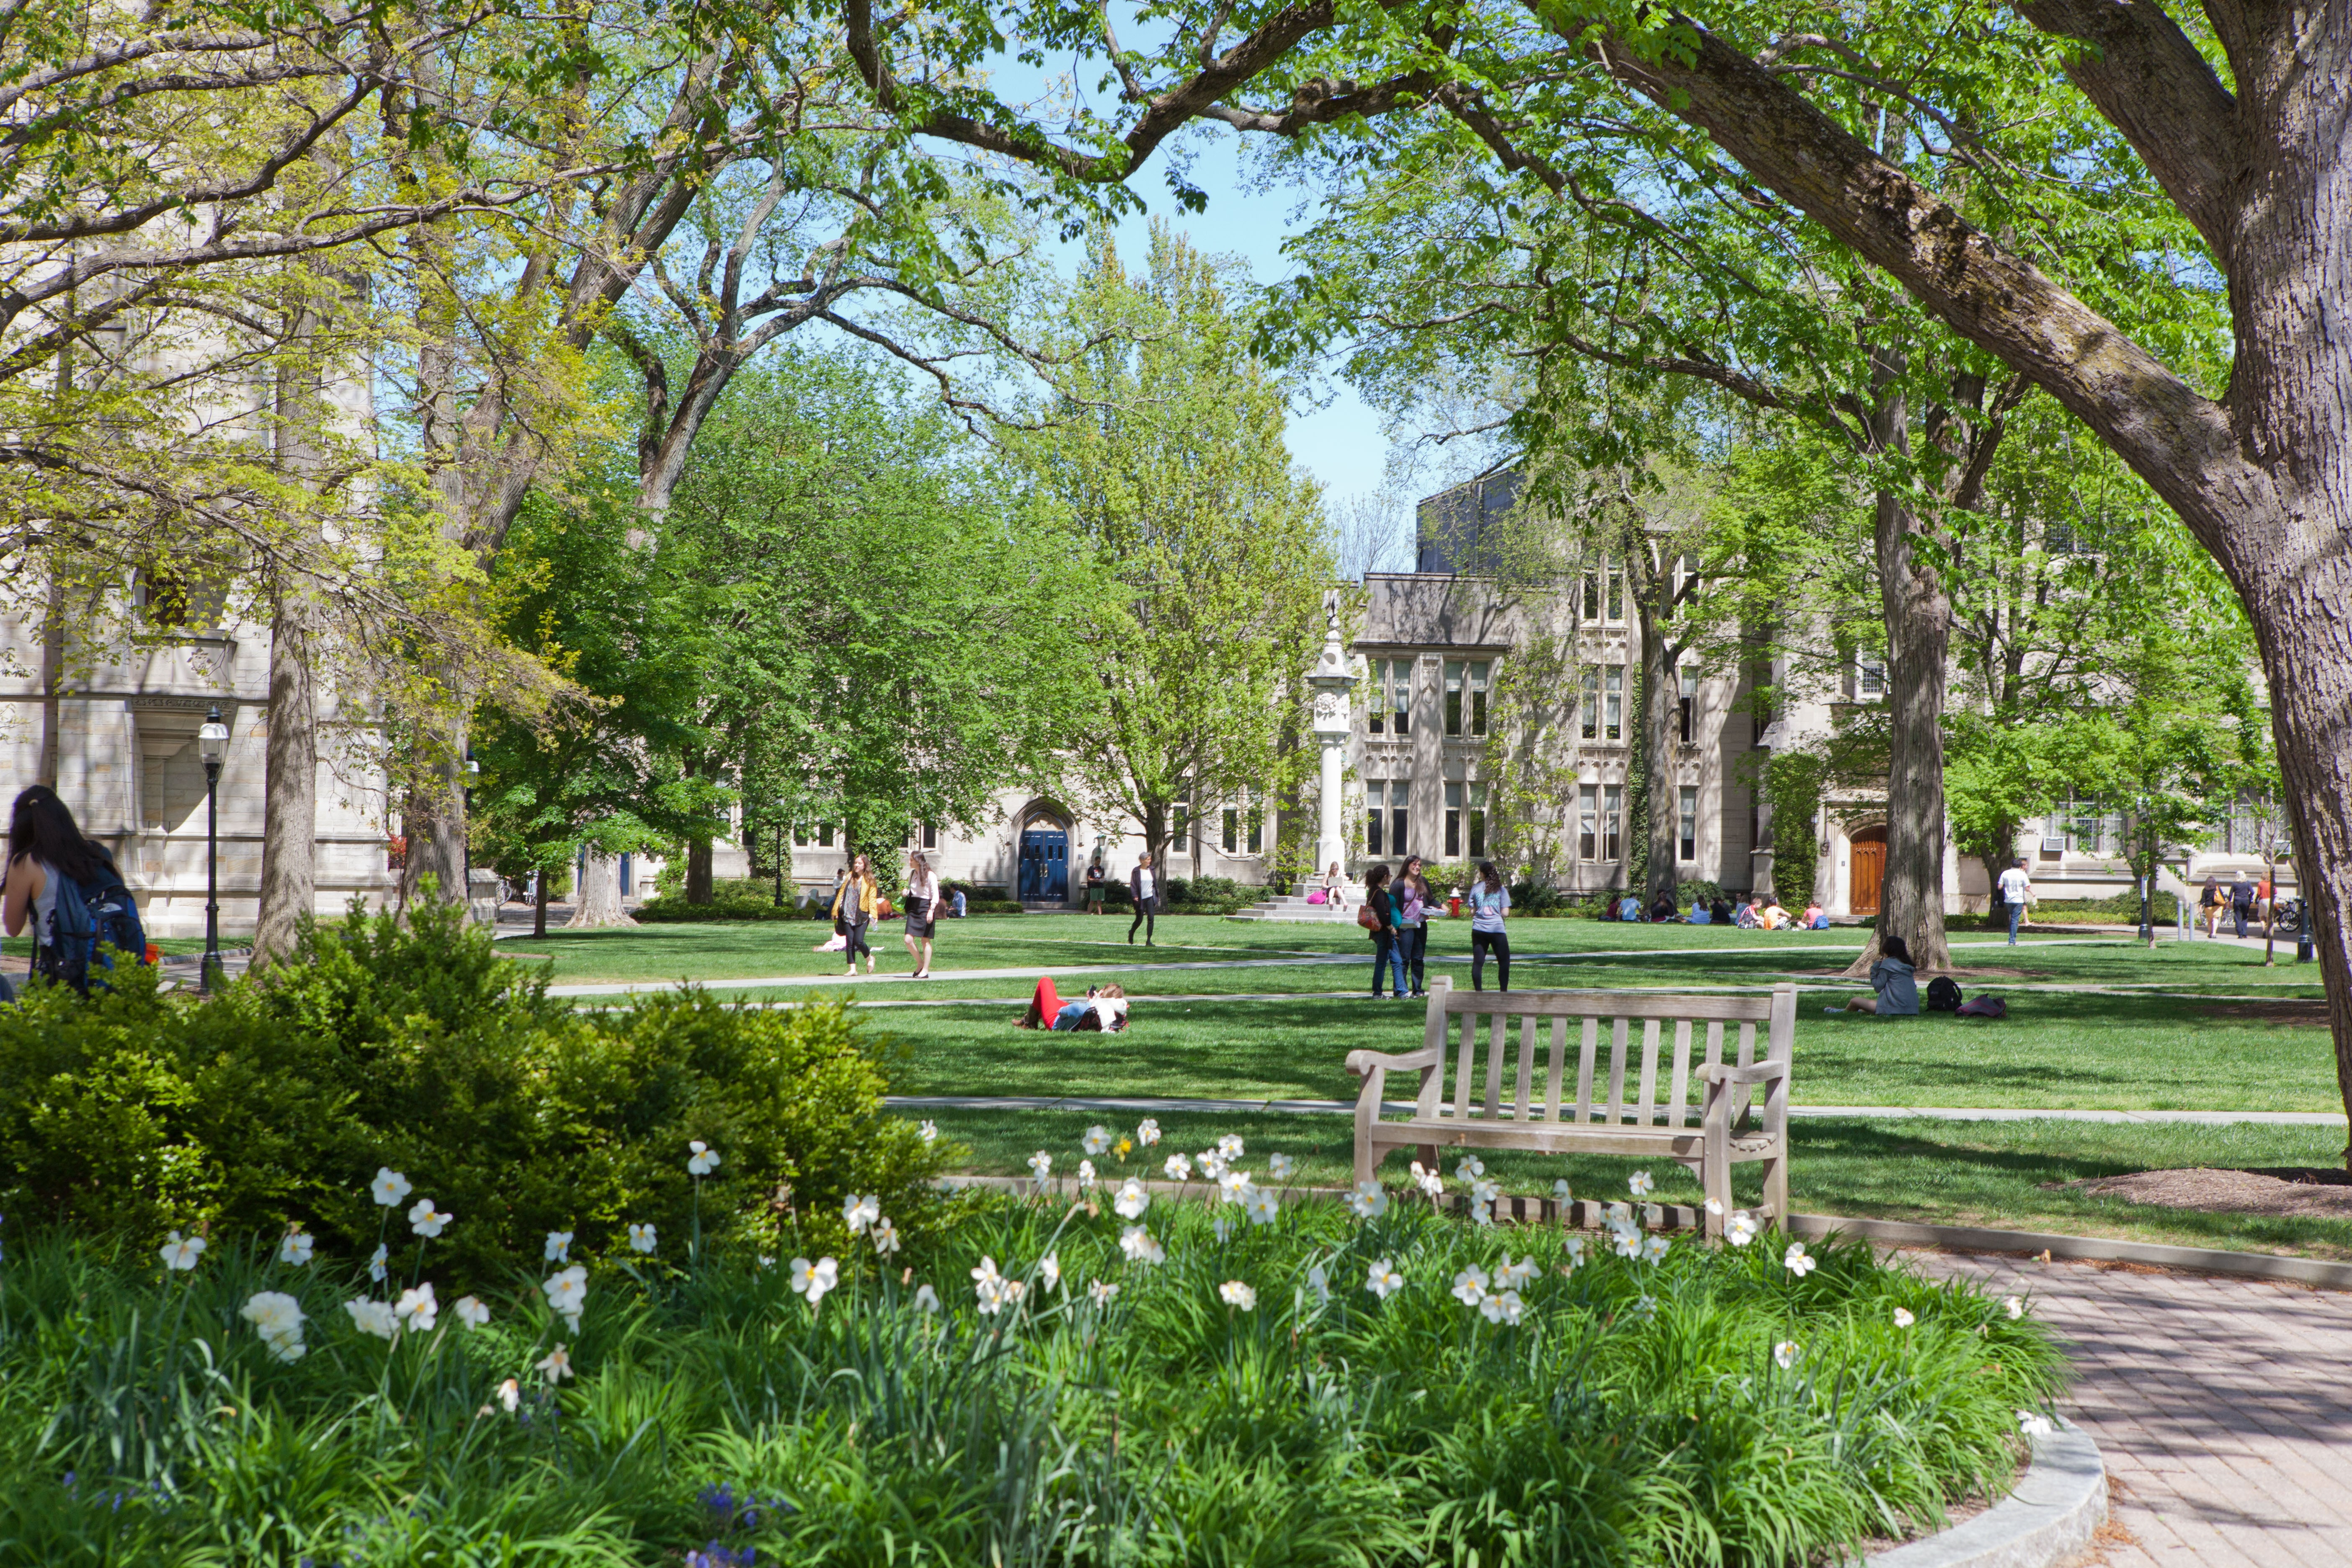 Princeton students walking and lounging during springtime at the McCosh courtyard on campus